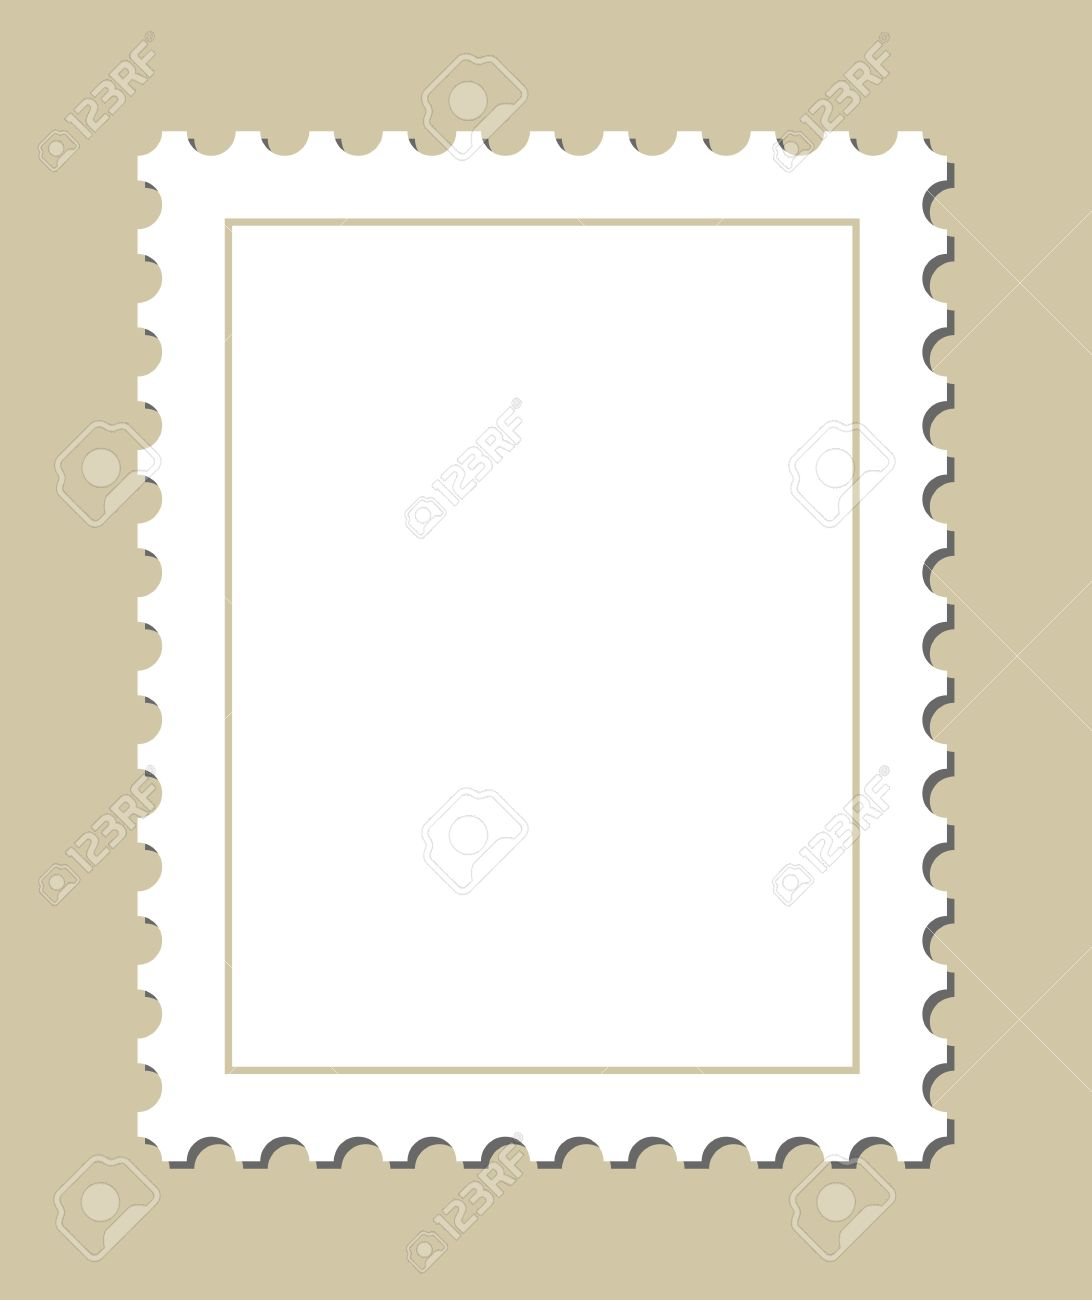 blank stamp template royalty free cliparts vectors and stock